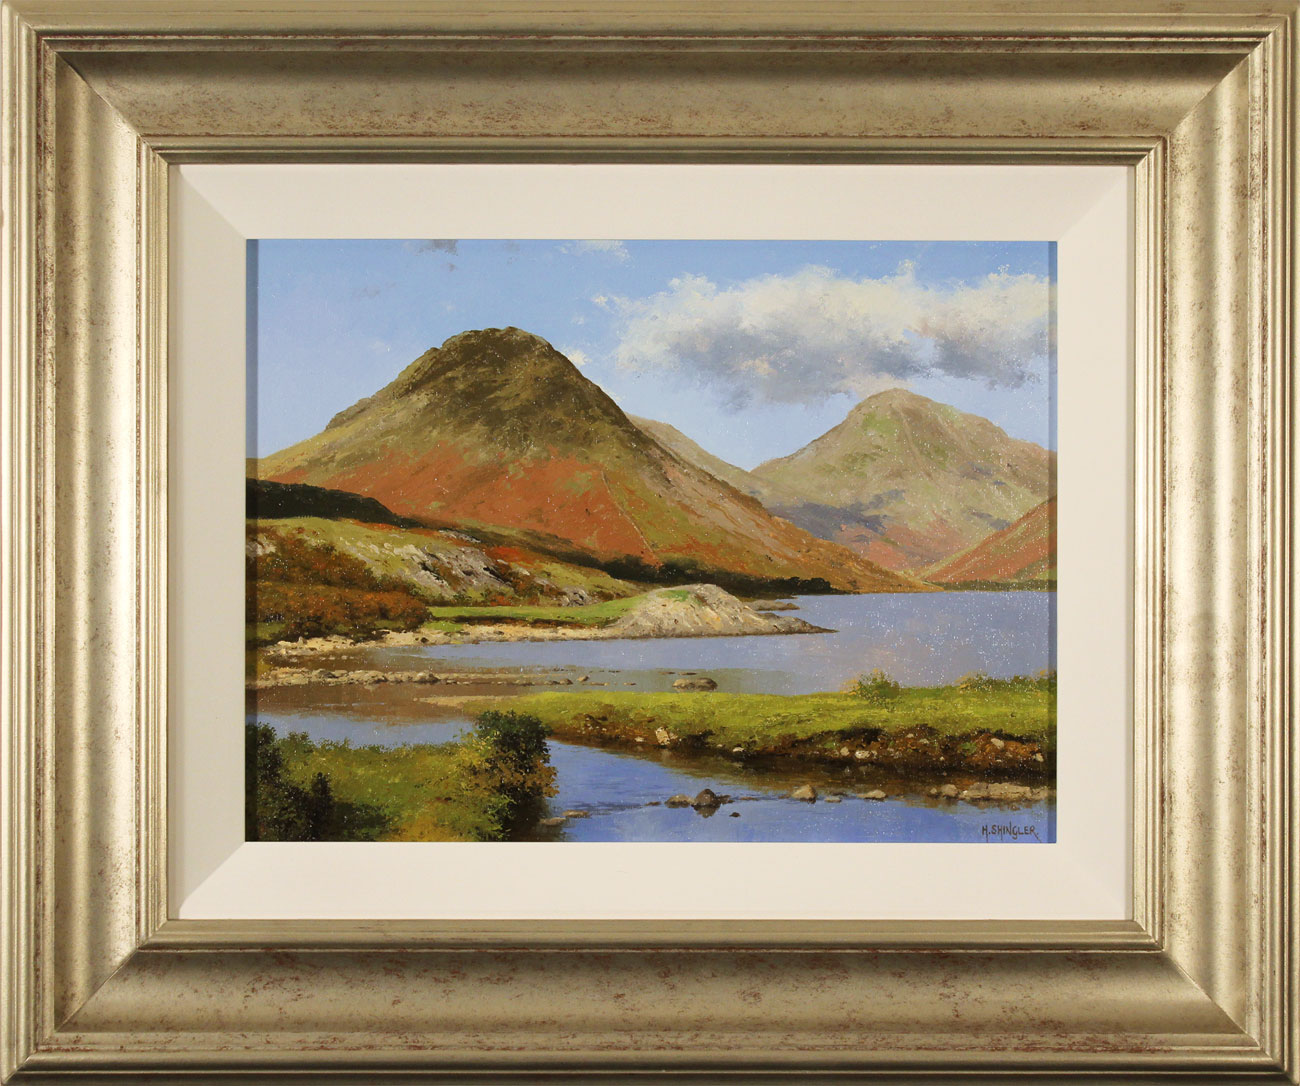 Howard Shingler, Original oil painting on panel, Yewbarrow from Wastwater Click to enlarge